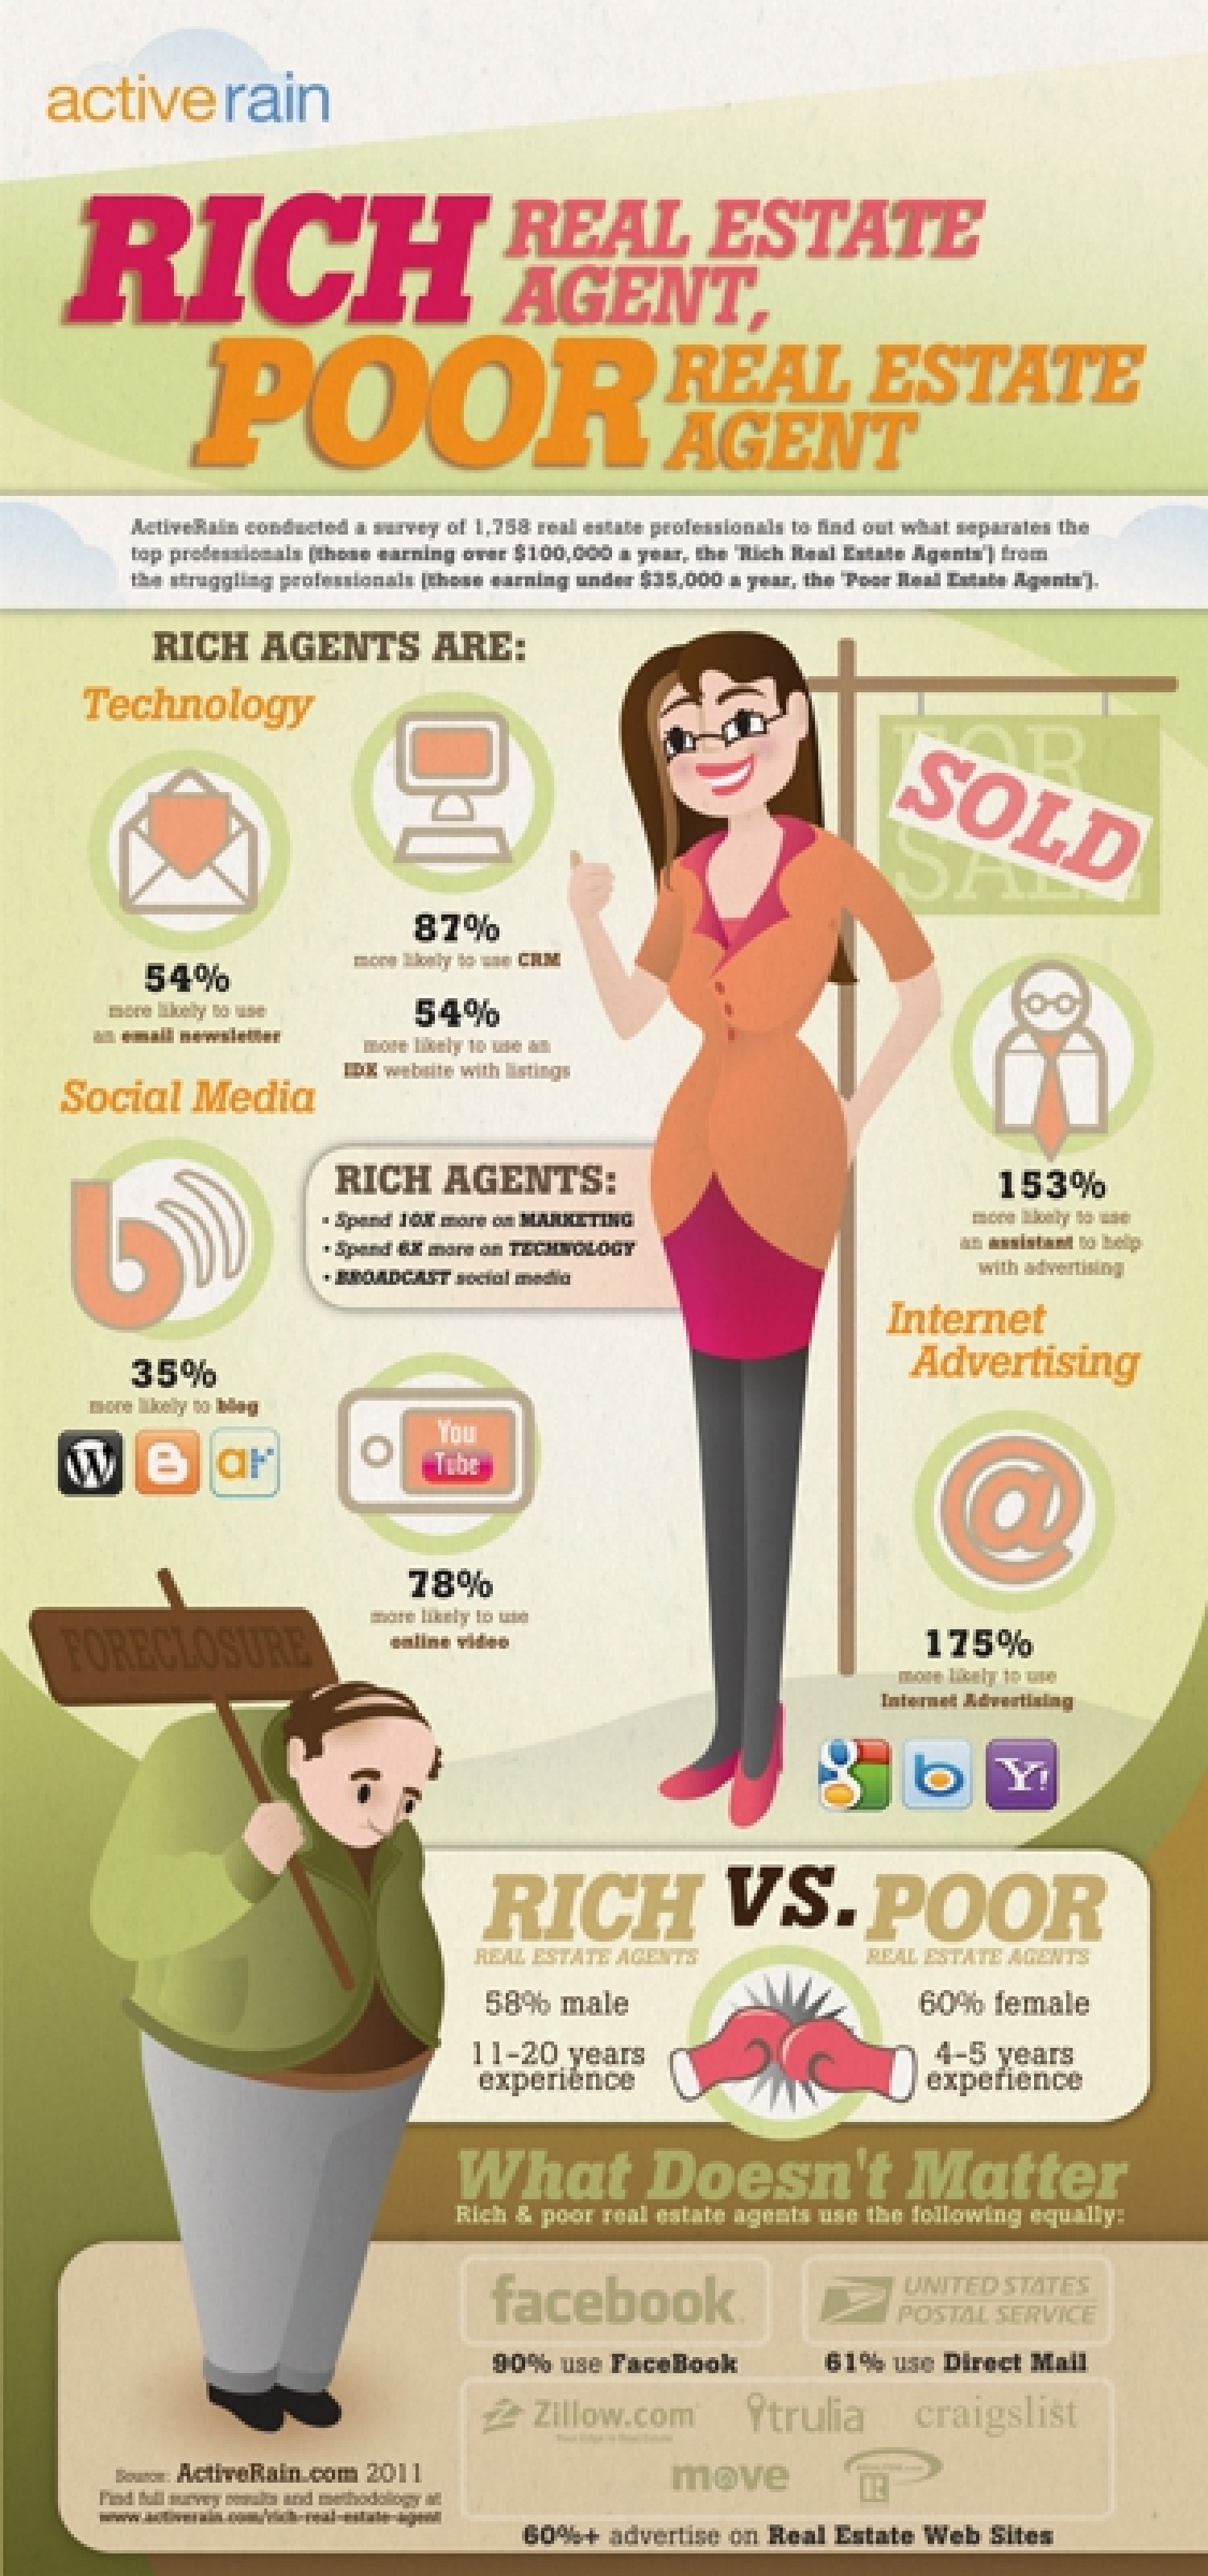 Rich Agent, Poor Agent Infographic